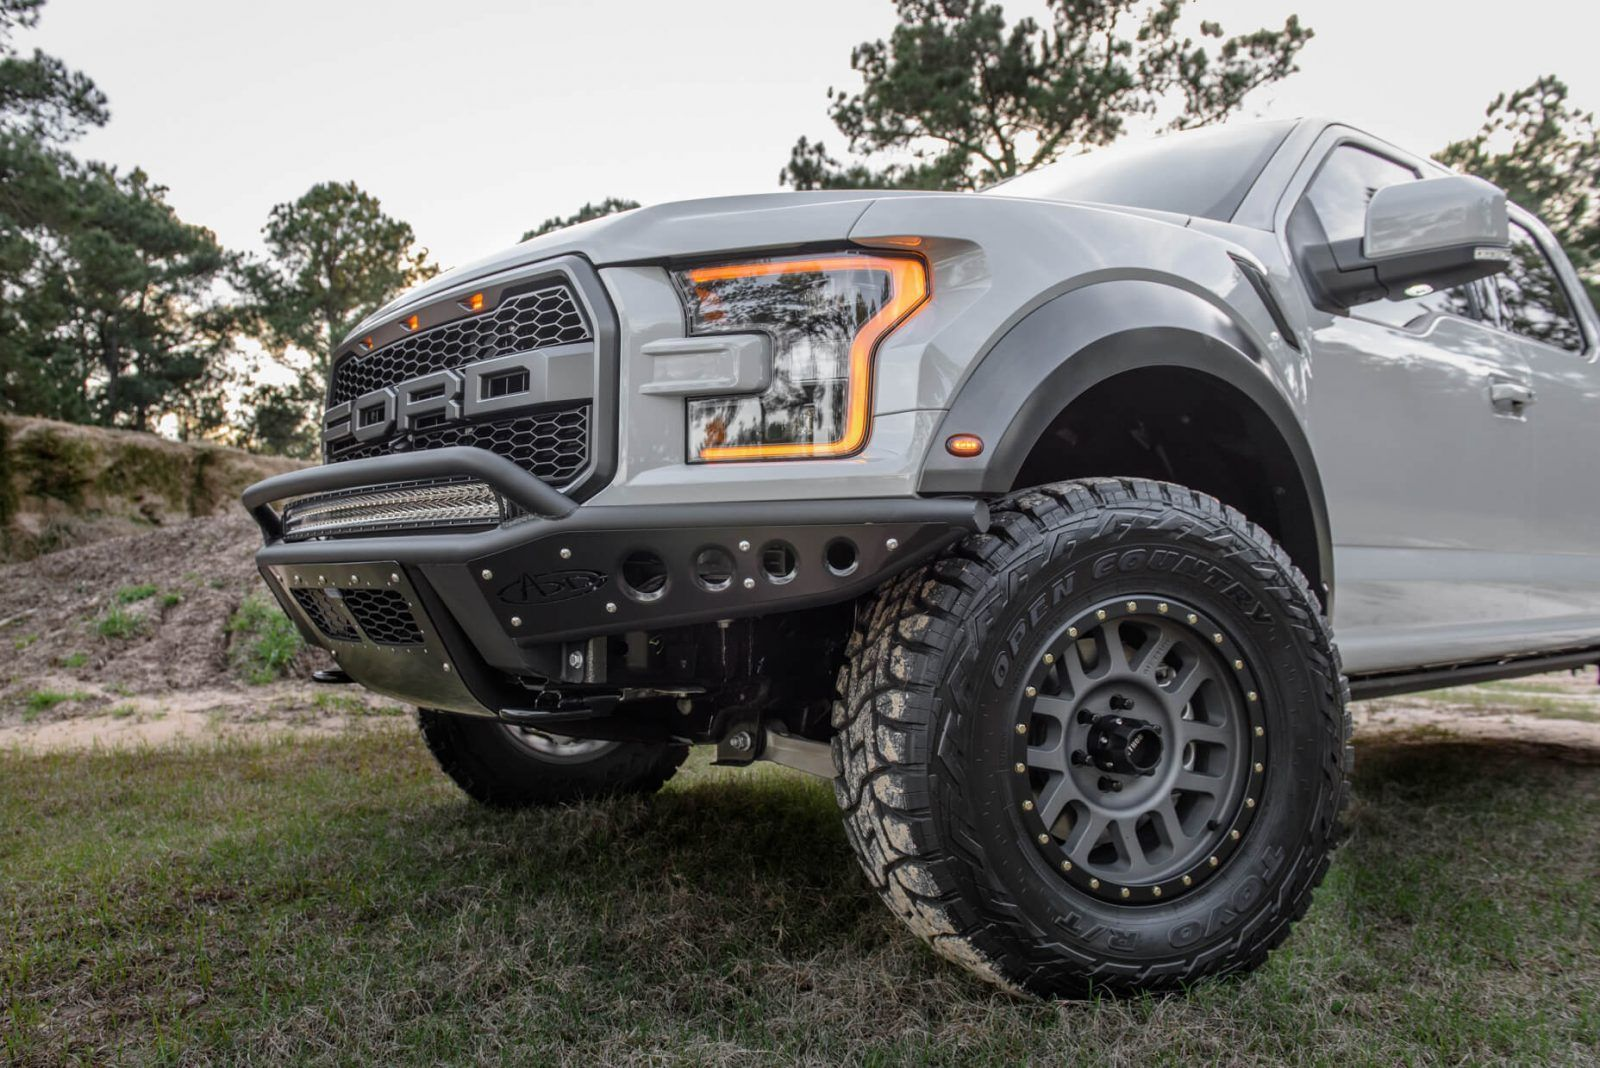 2017 Ford Raptor Stock Front Bumper Removal Guide Ford Raptor Ford Raptor 2017 Ford Trucks